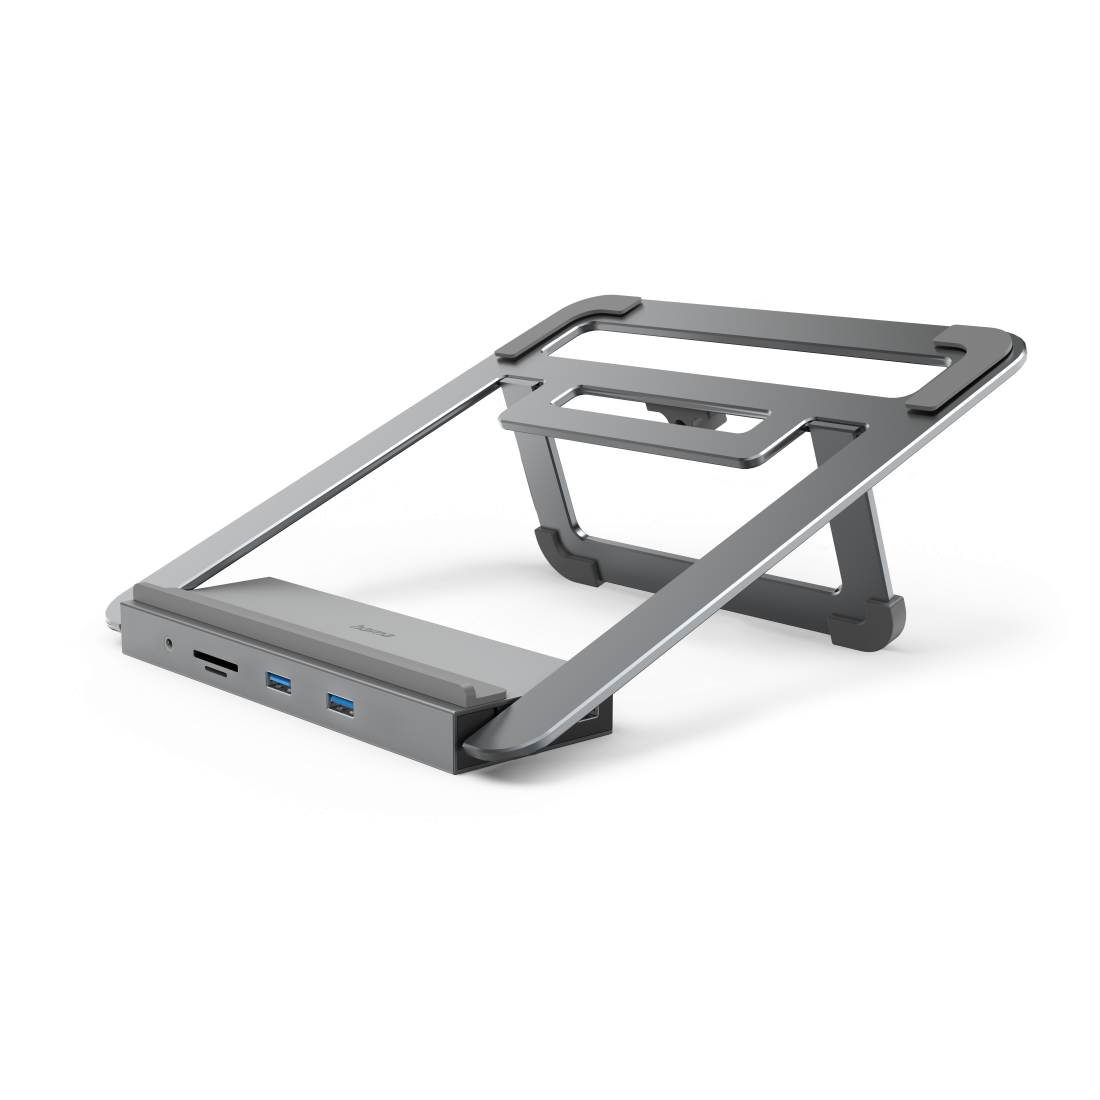 abx4 High-Res Image4 - Hama, USB-C Docking Station with Notebook Stand, 12 Ports